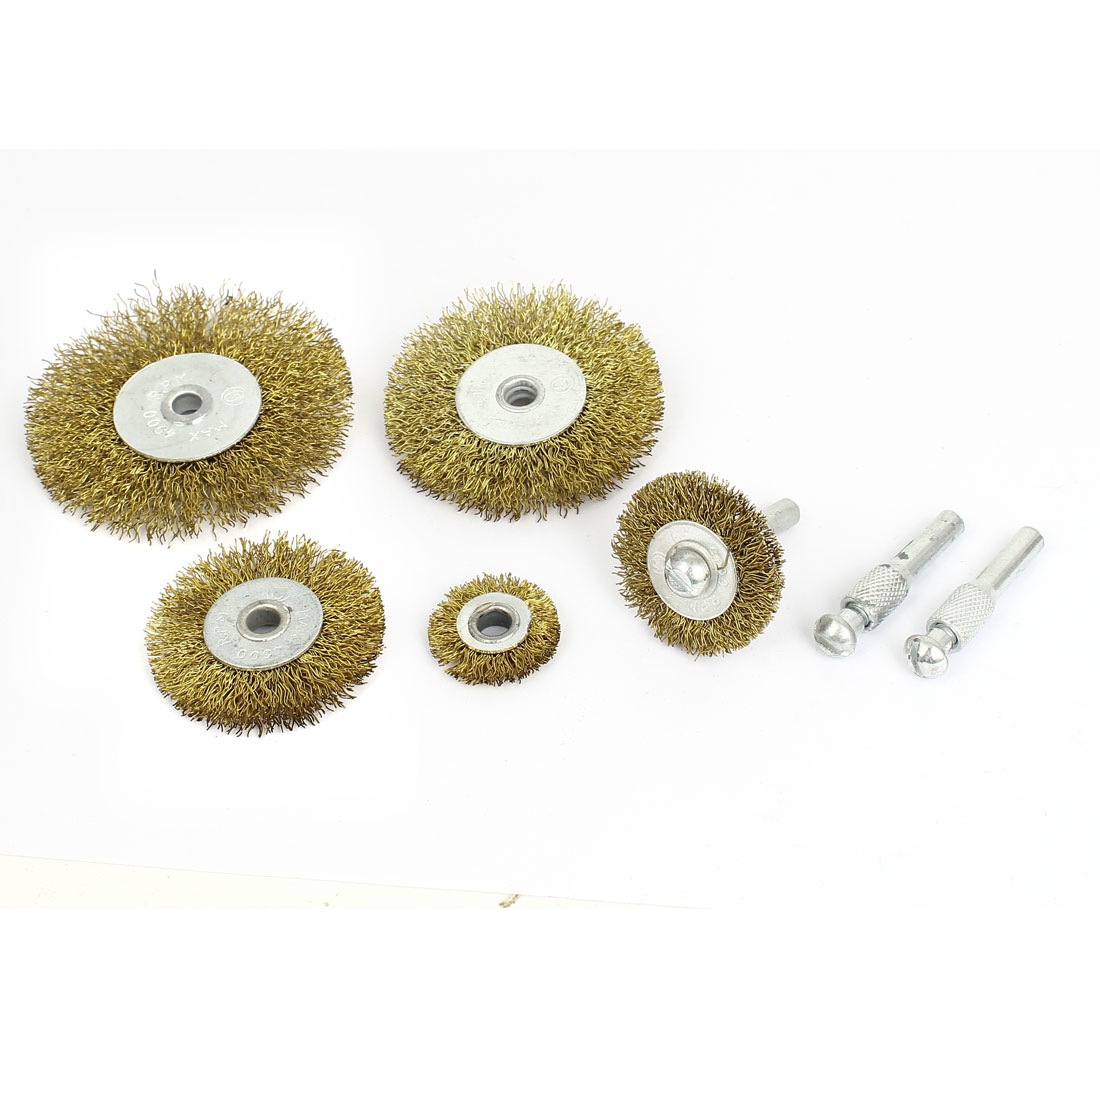 Gold Tone Steel Wire Polishing Grinding Wheel Cleaning Brush Tool Set